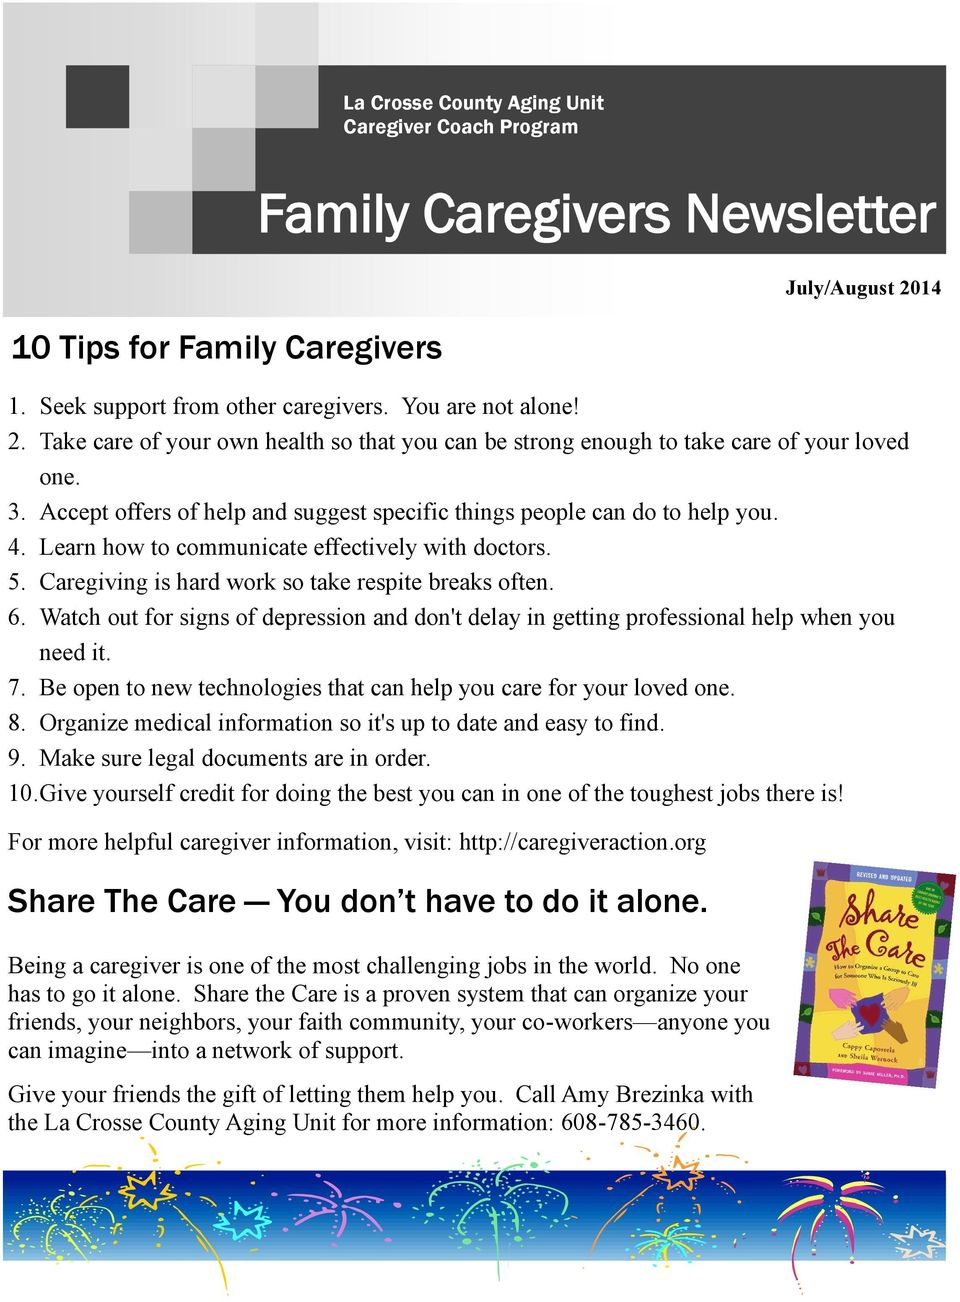 Learn how to communicate effectively with doctors. 5. Caregiving is hard work so take respite breaks often. 6.